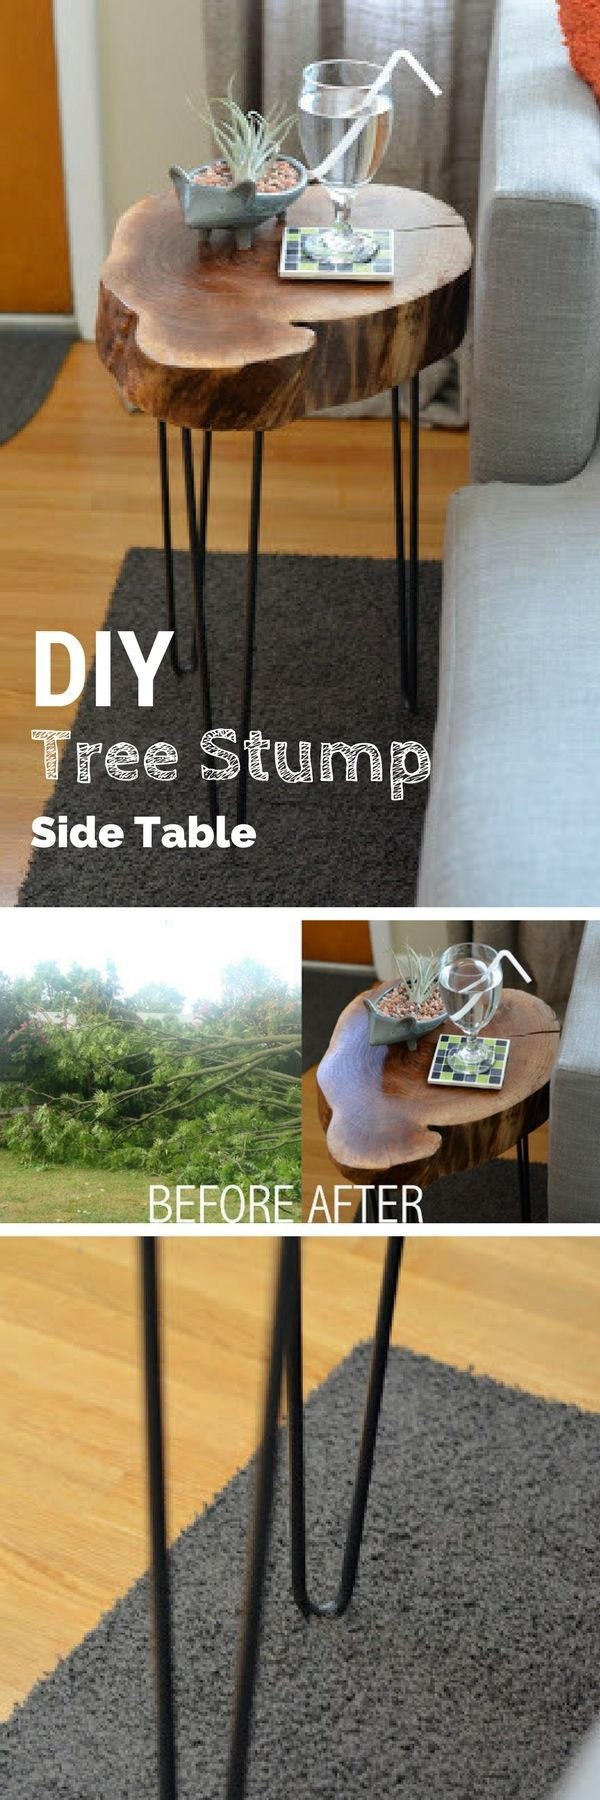 Check out the tutorial on how to build a DIY tree stump side table @istandarddesign